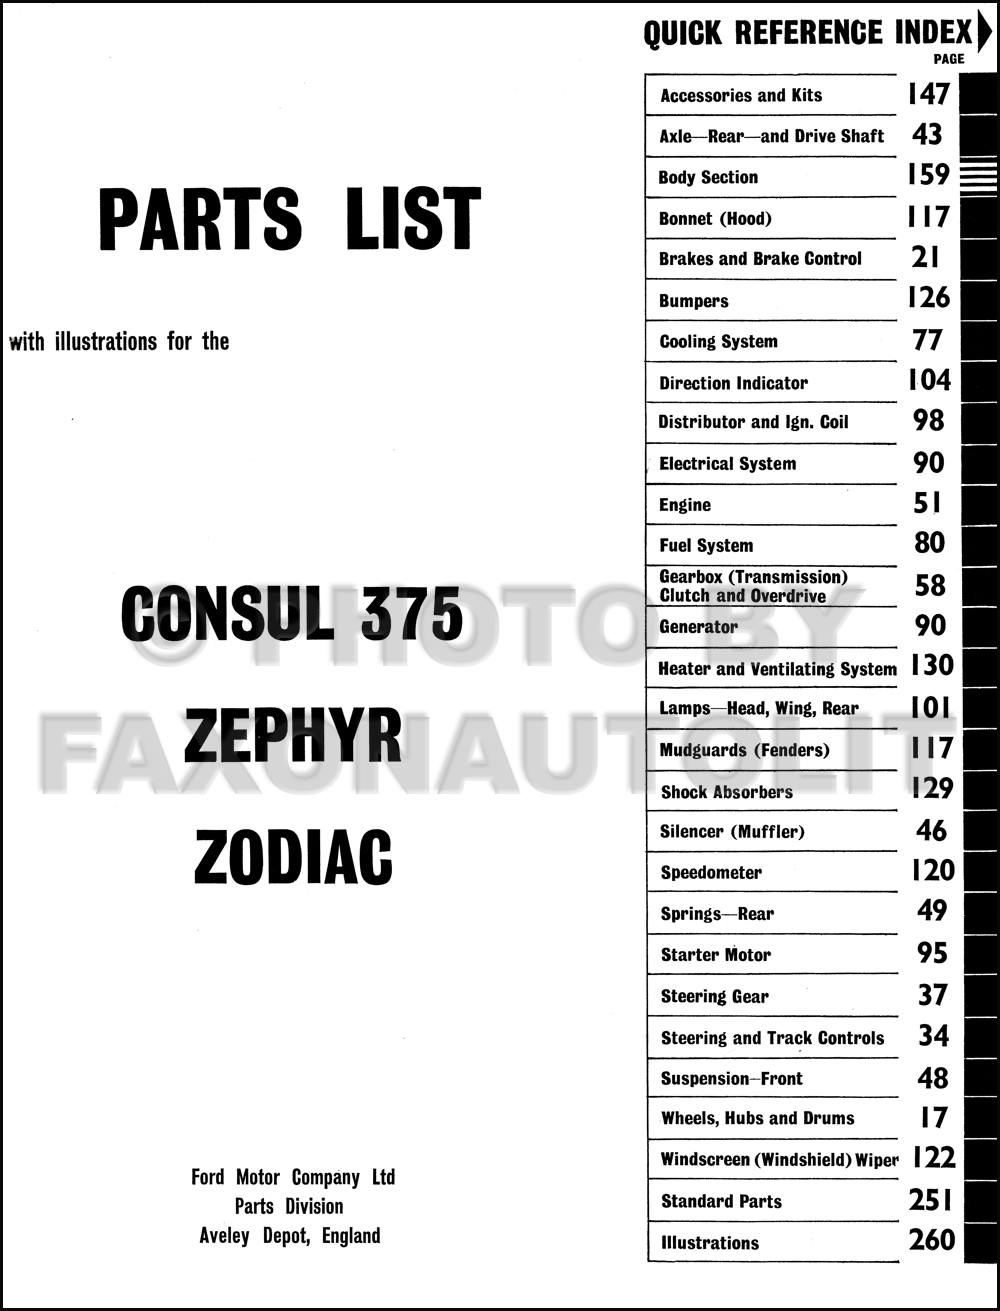 1956-1962 Ford Parts Catalog Original Consul, Zephyr, and Zodiac